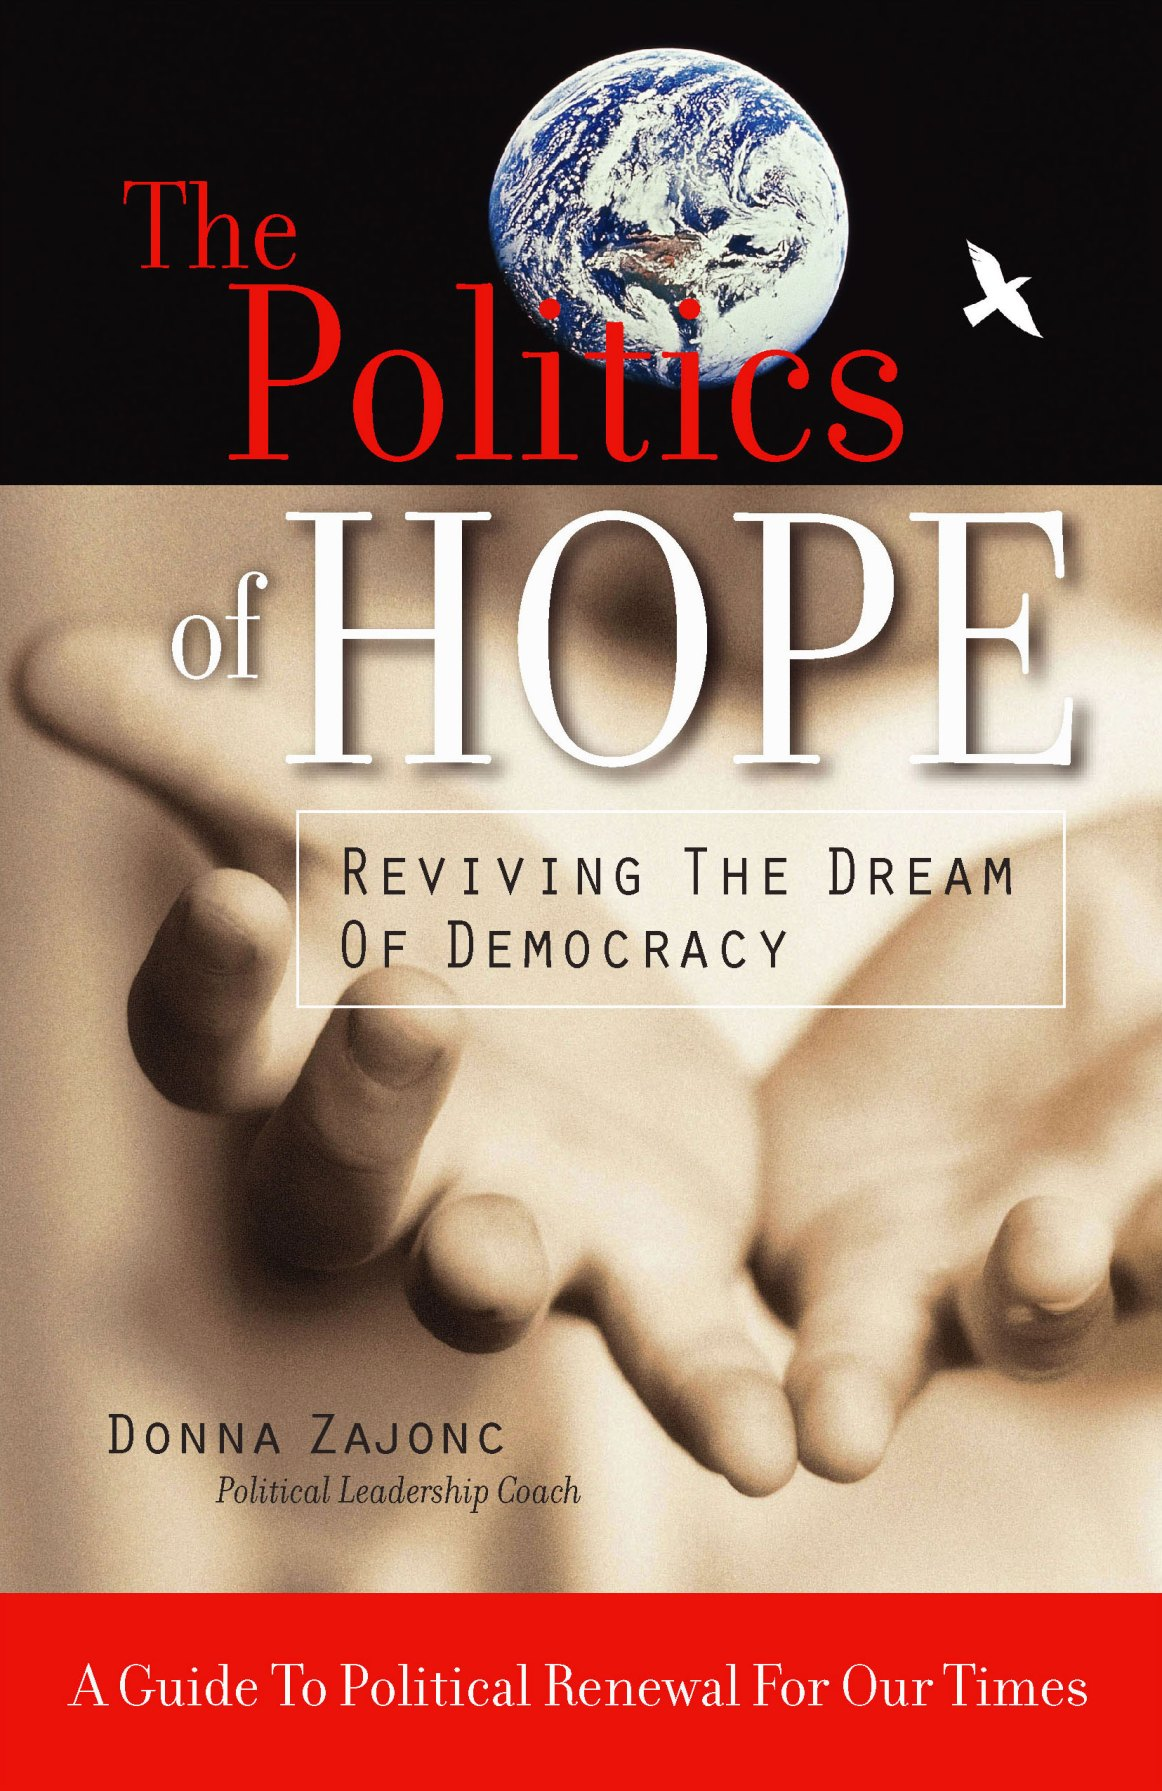 politics-of-hope-book-cover.jpg